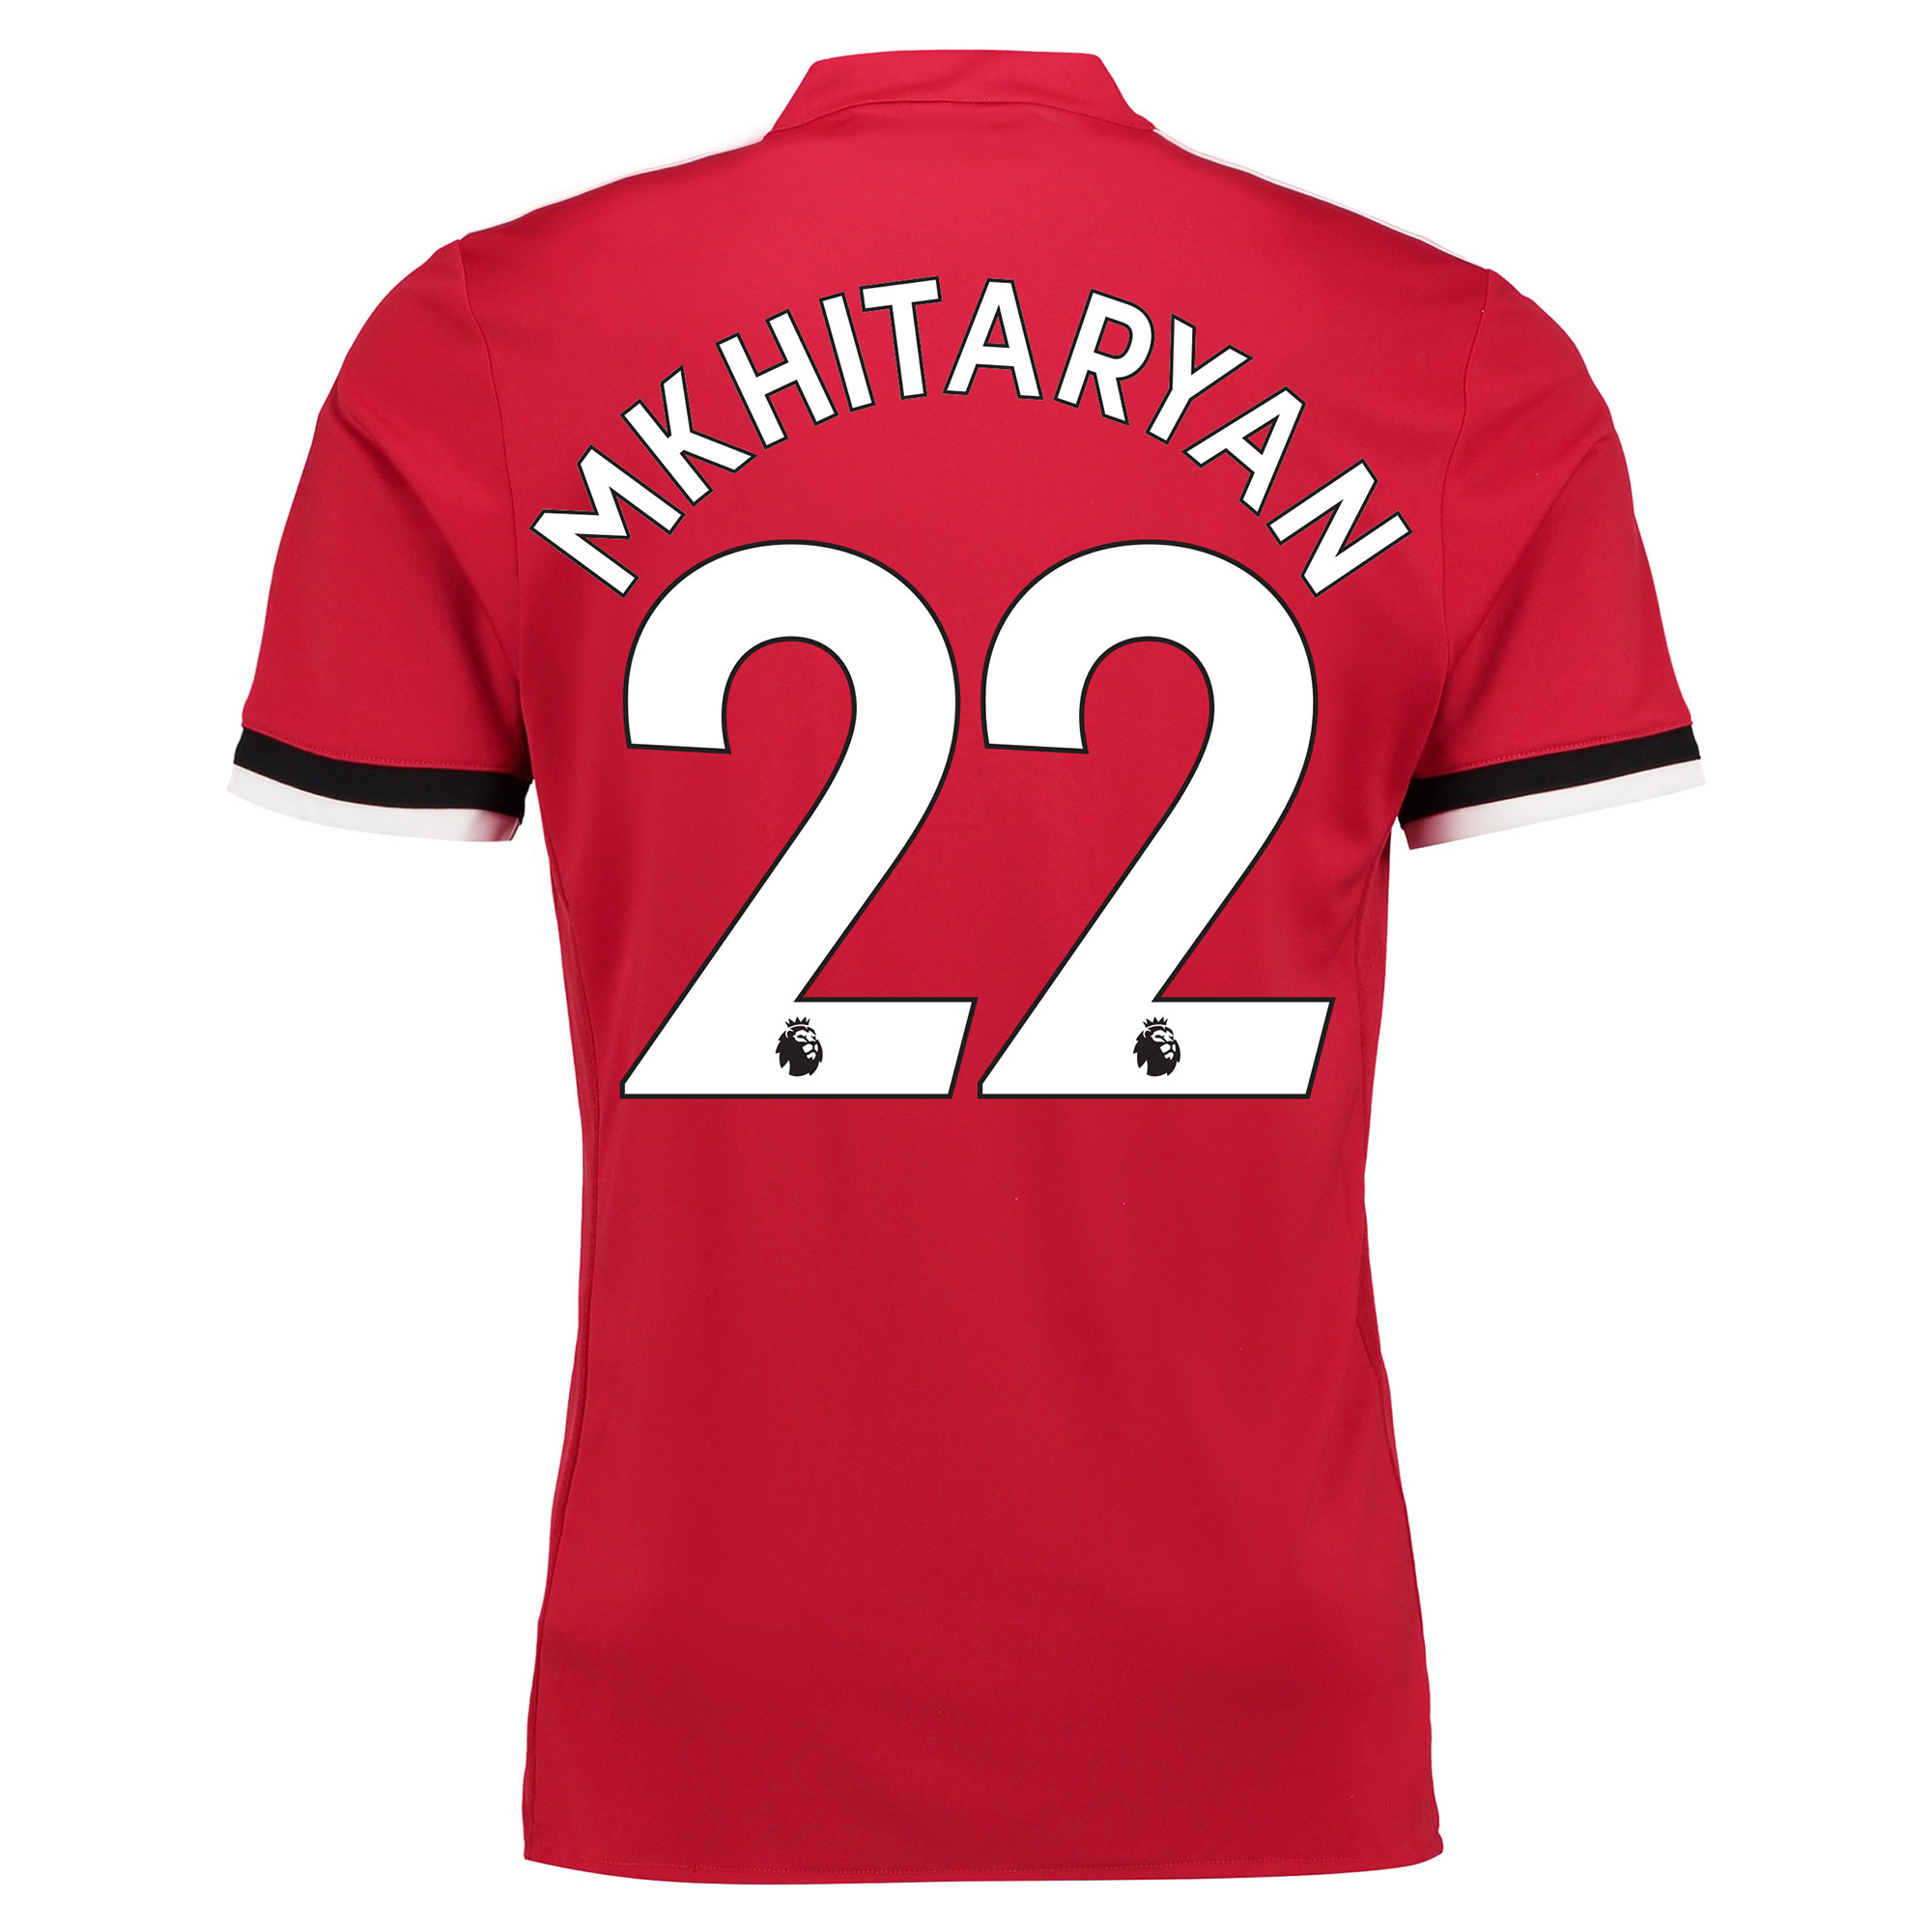 Manchester United Home Shirt 2017-18 with Mkhitaryan 22 printing